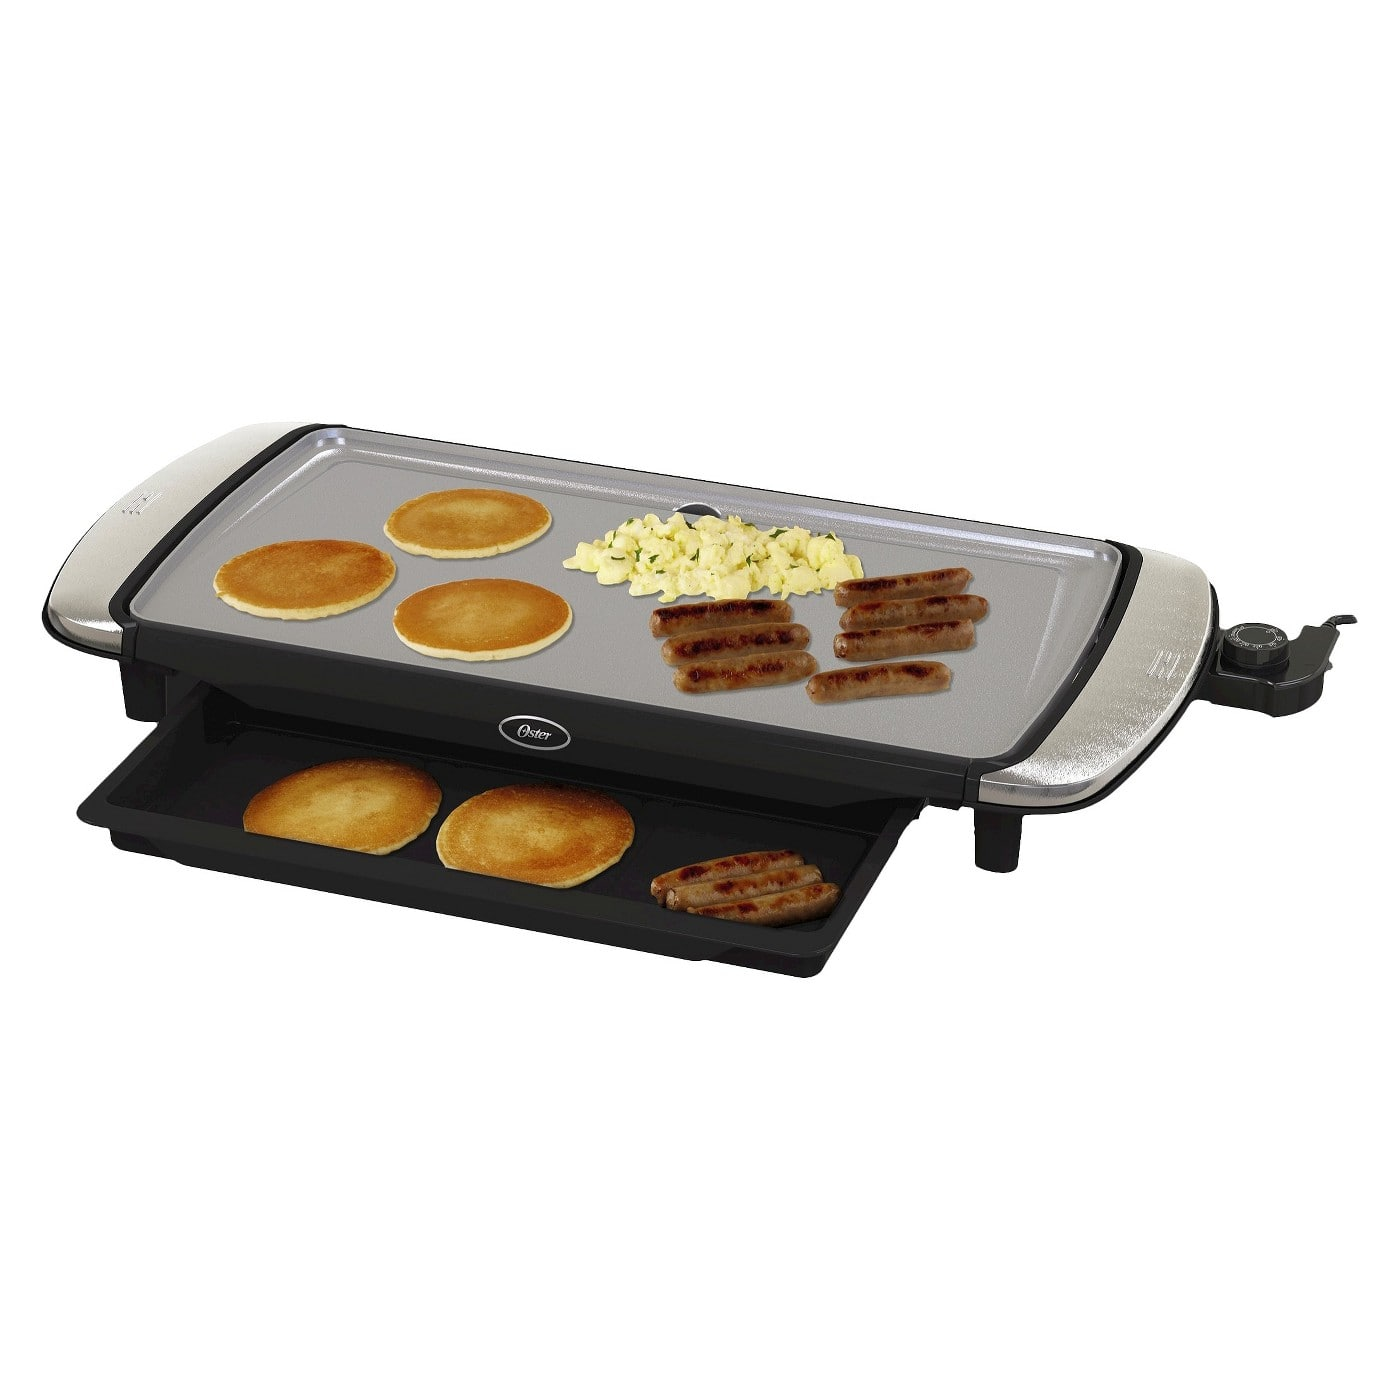 Target Redcard Members Oster Duraceramic Electric Griddle 19 99 Free S H